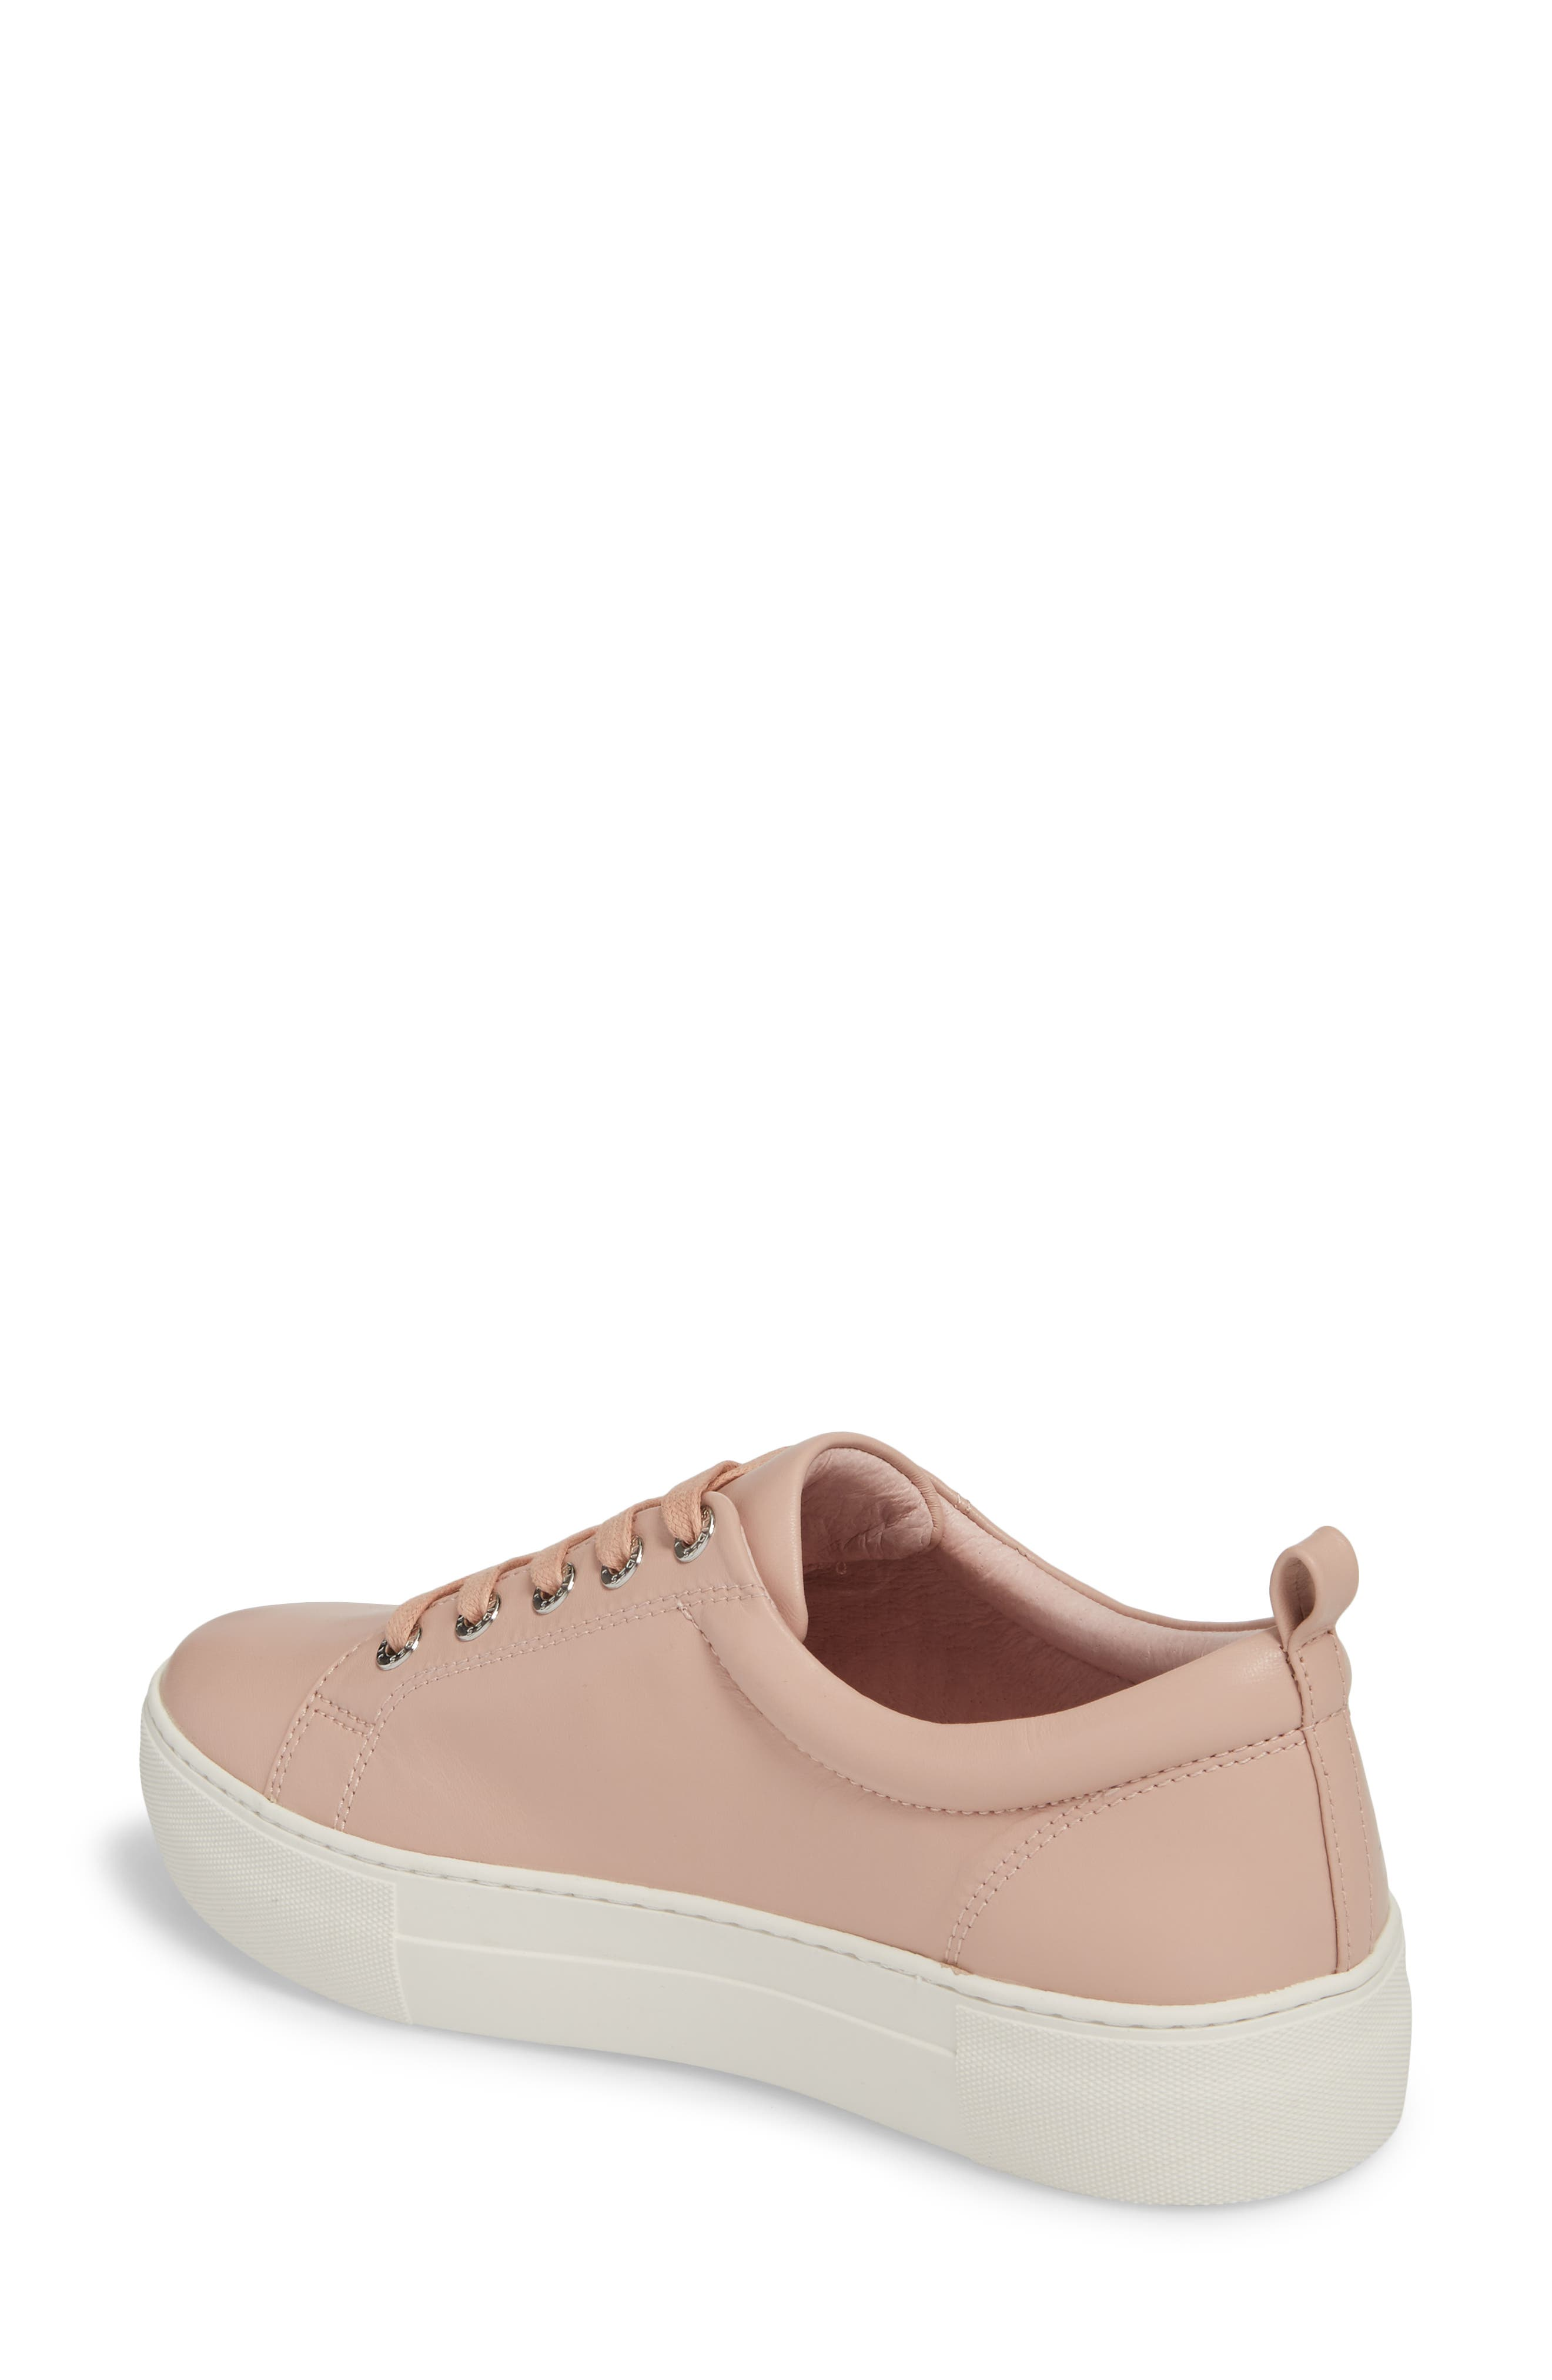 Adel Floral Sneaker,                             Alternate thumbnail 6, color,